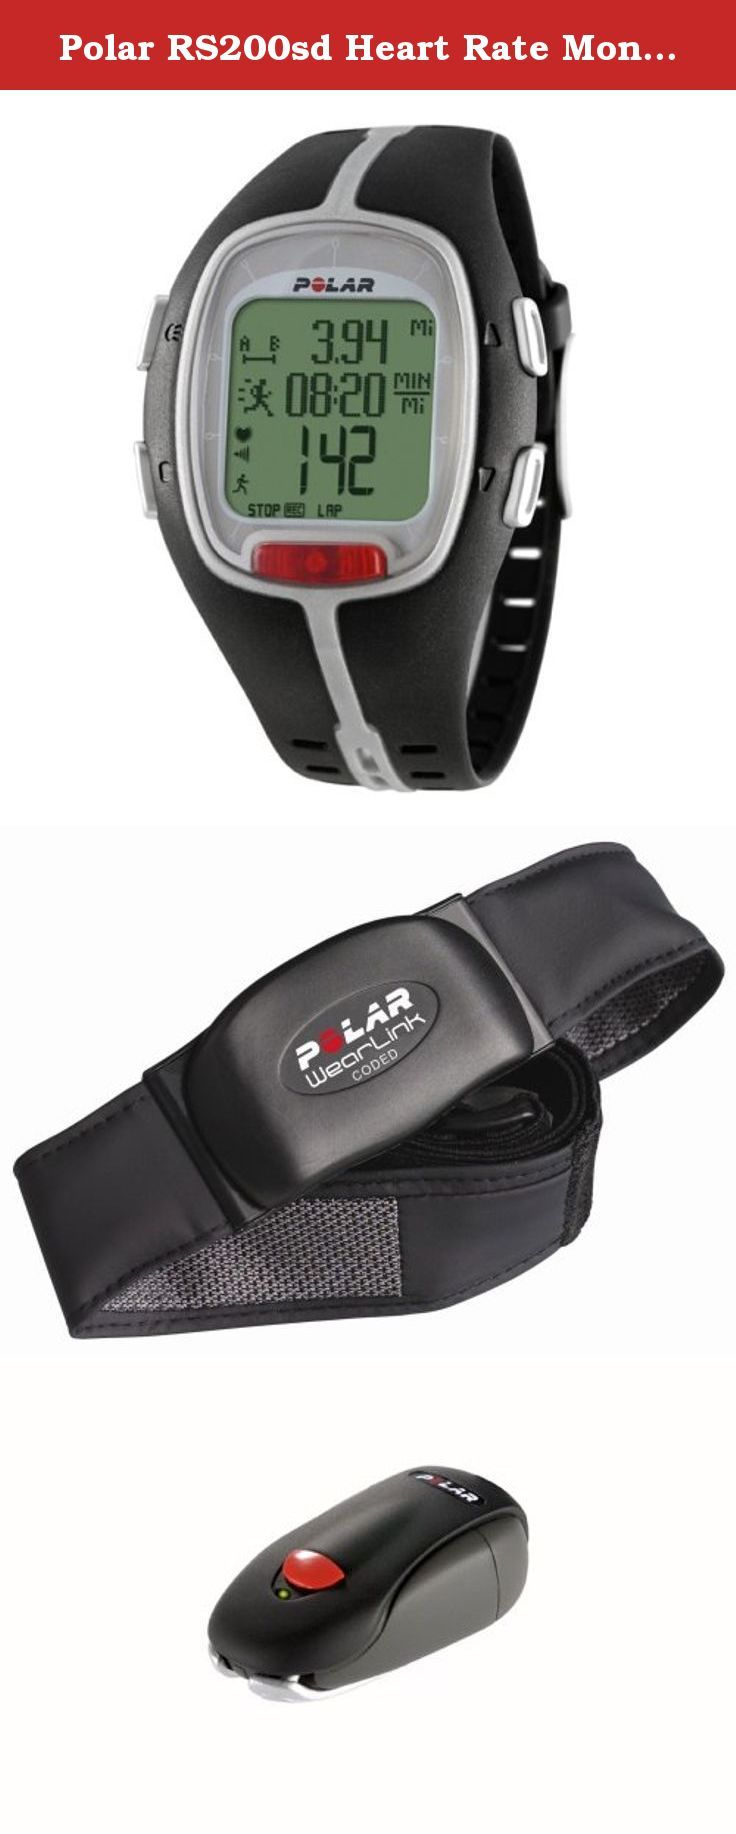 Polar RS200sd Heart Rate Monitor Watch (Black). The RS200sd was made for competitive, goal oriented runners who want to enhance their running experience. With the S1 foot pod the RS200sd provides accurate speed and distance data like the S625X so you can combine pace with heart rate data. Use the Event Countdown Timer to manage your training leading up to your next running event. You can even upload your settings to your running computer and then download your workout files to the Polar...